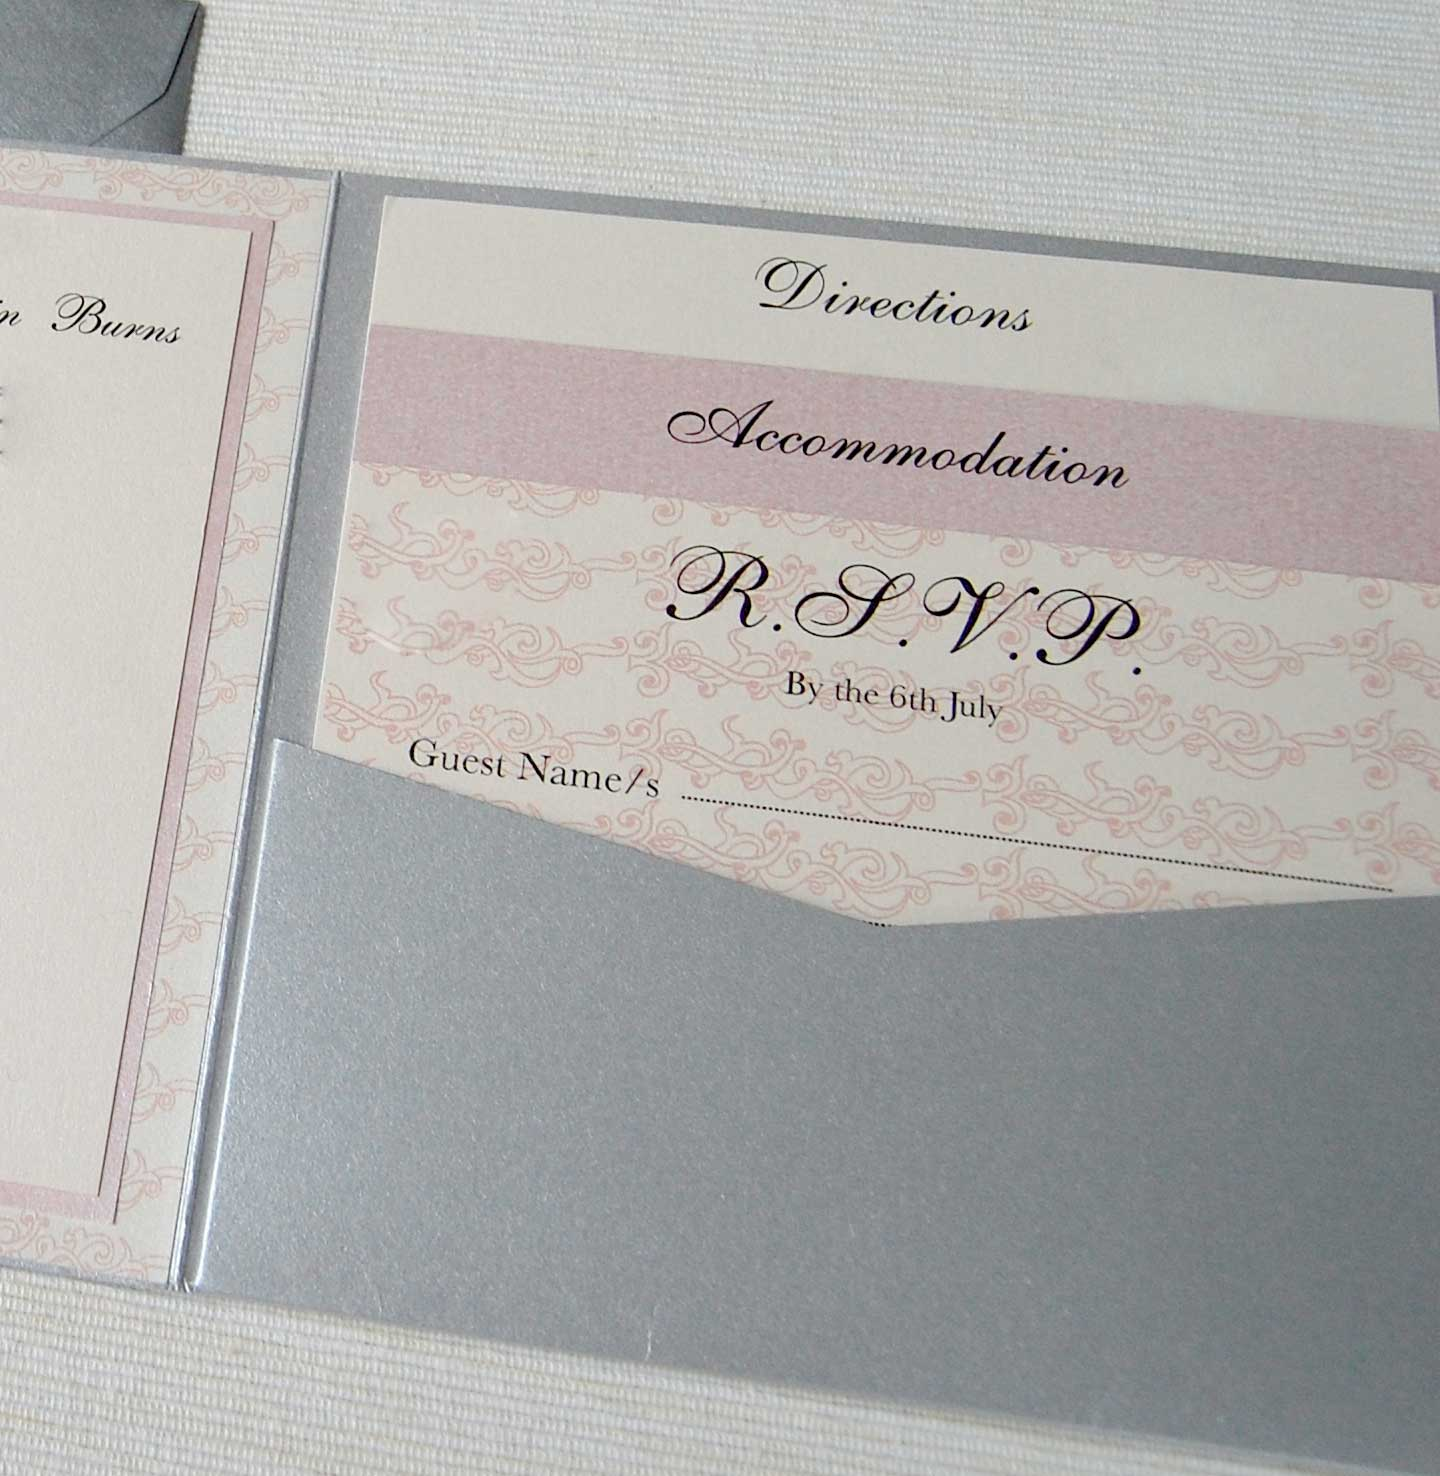 Lots of love invitations posted on march 7th 2013 in real wedding invitations stopboris Choice Image